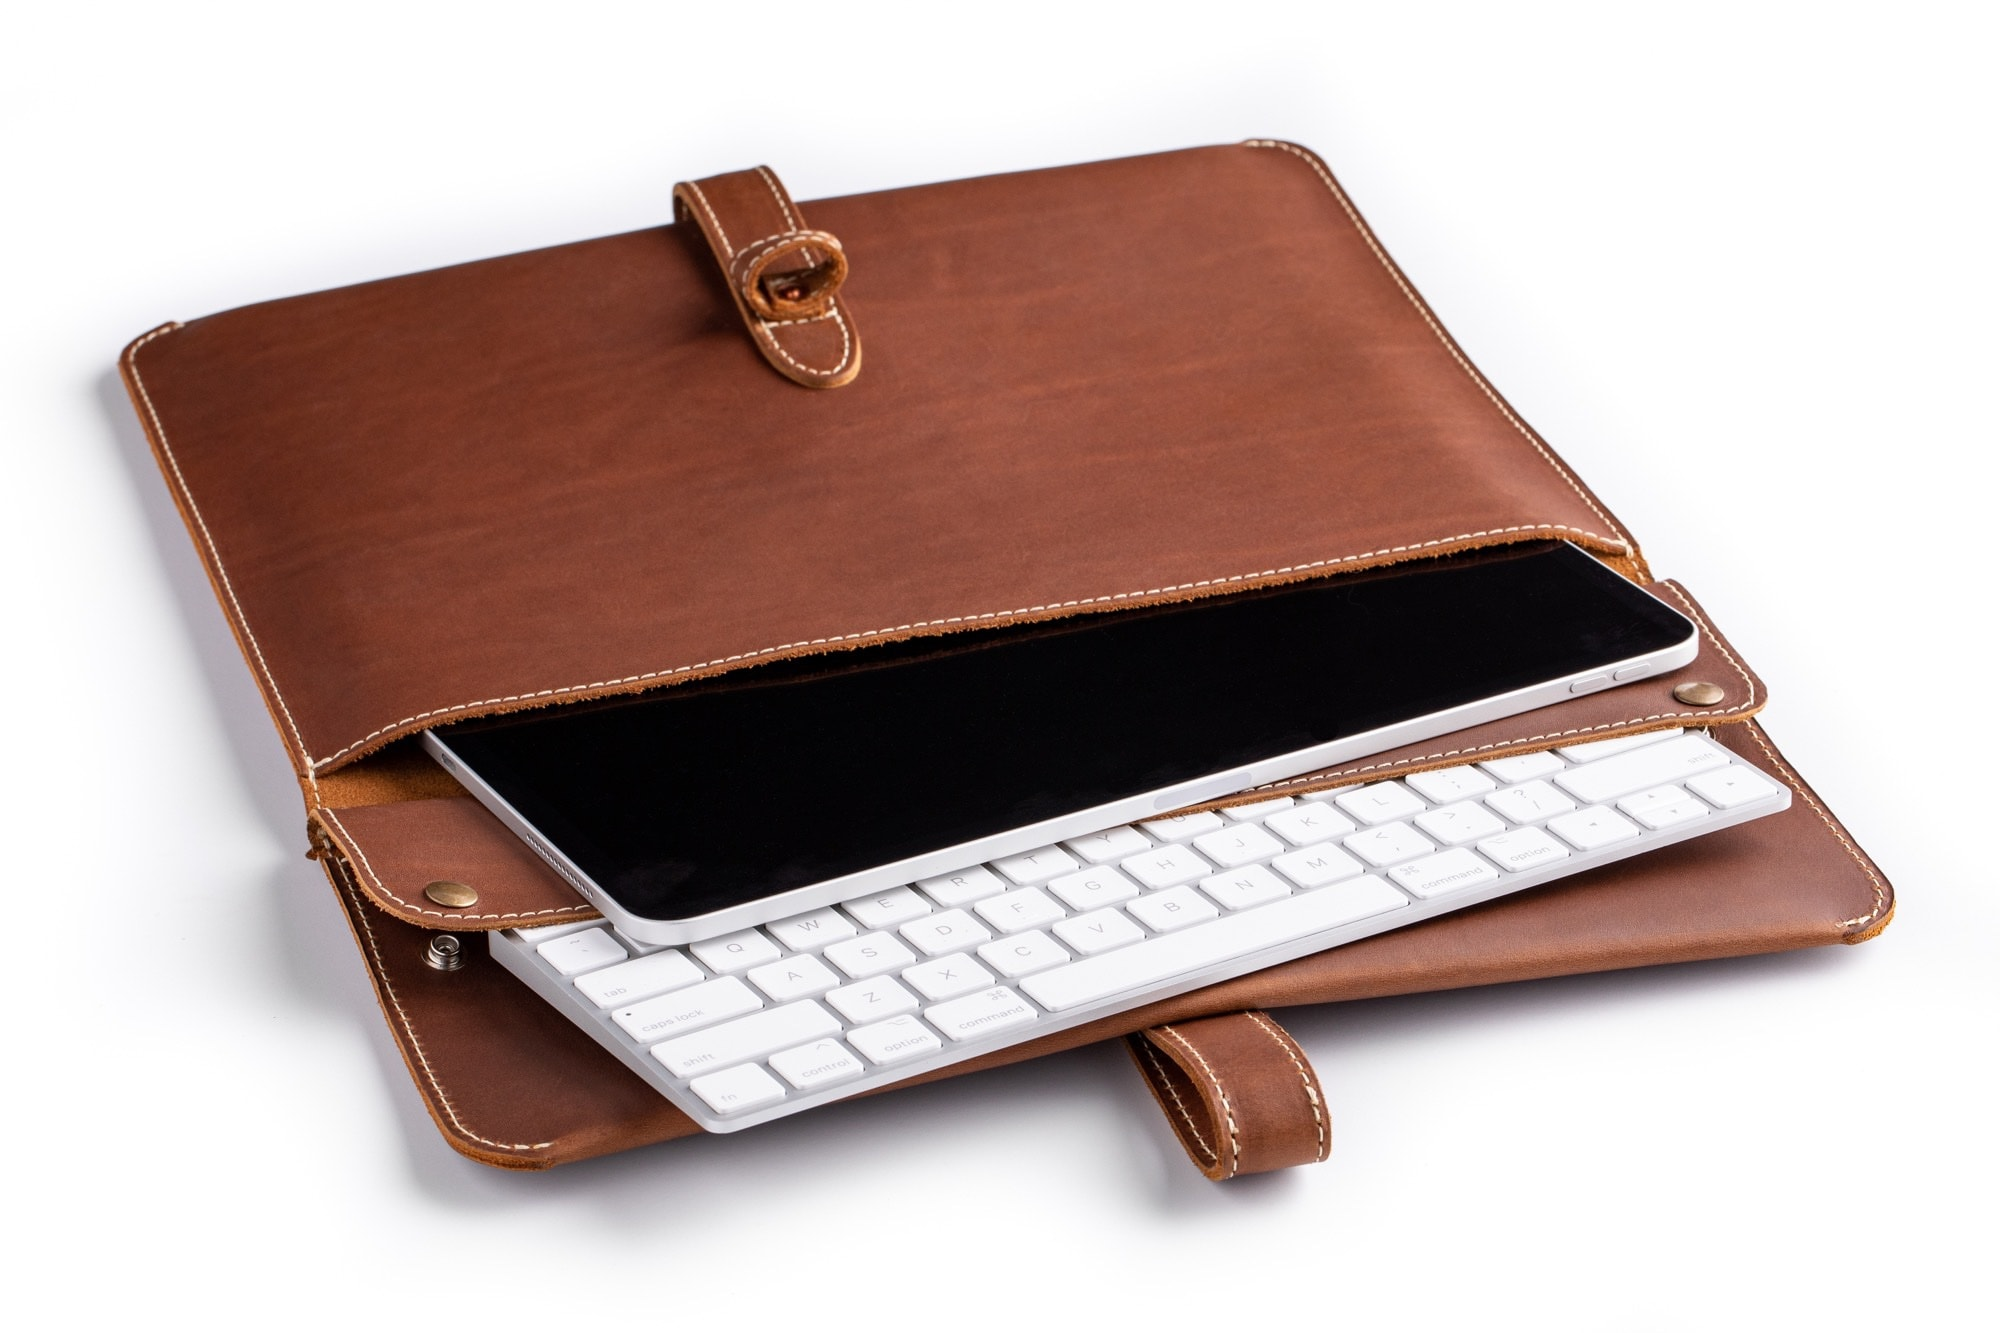 The Pad & Quill Oxford iPad Sleeve offers plenty of storage space.